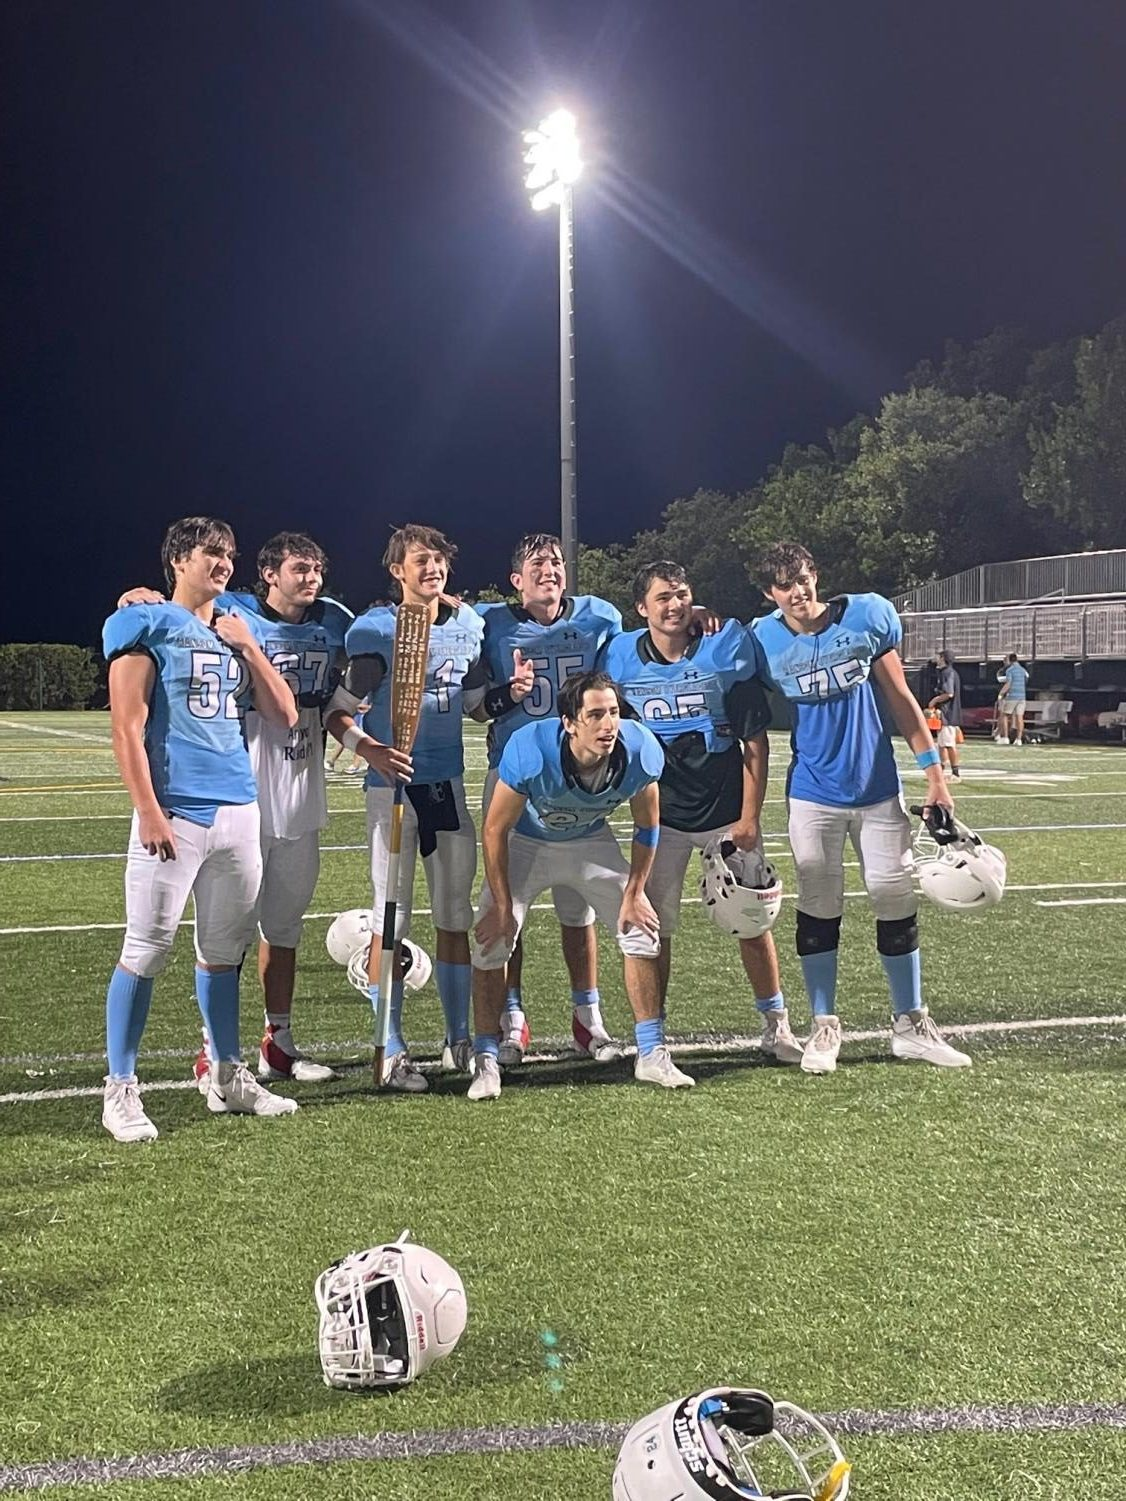 RE Football REtains the Oar for 2021